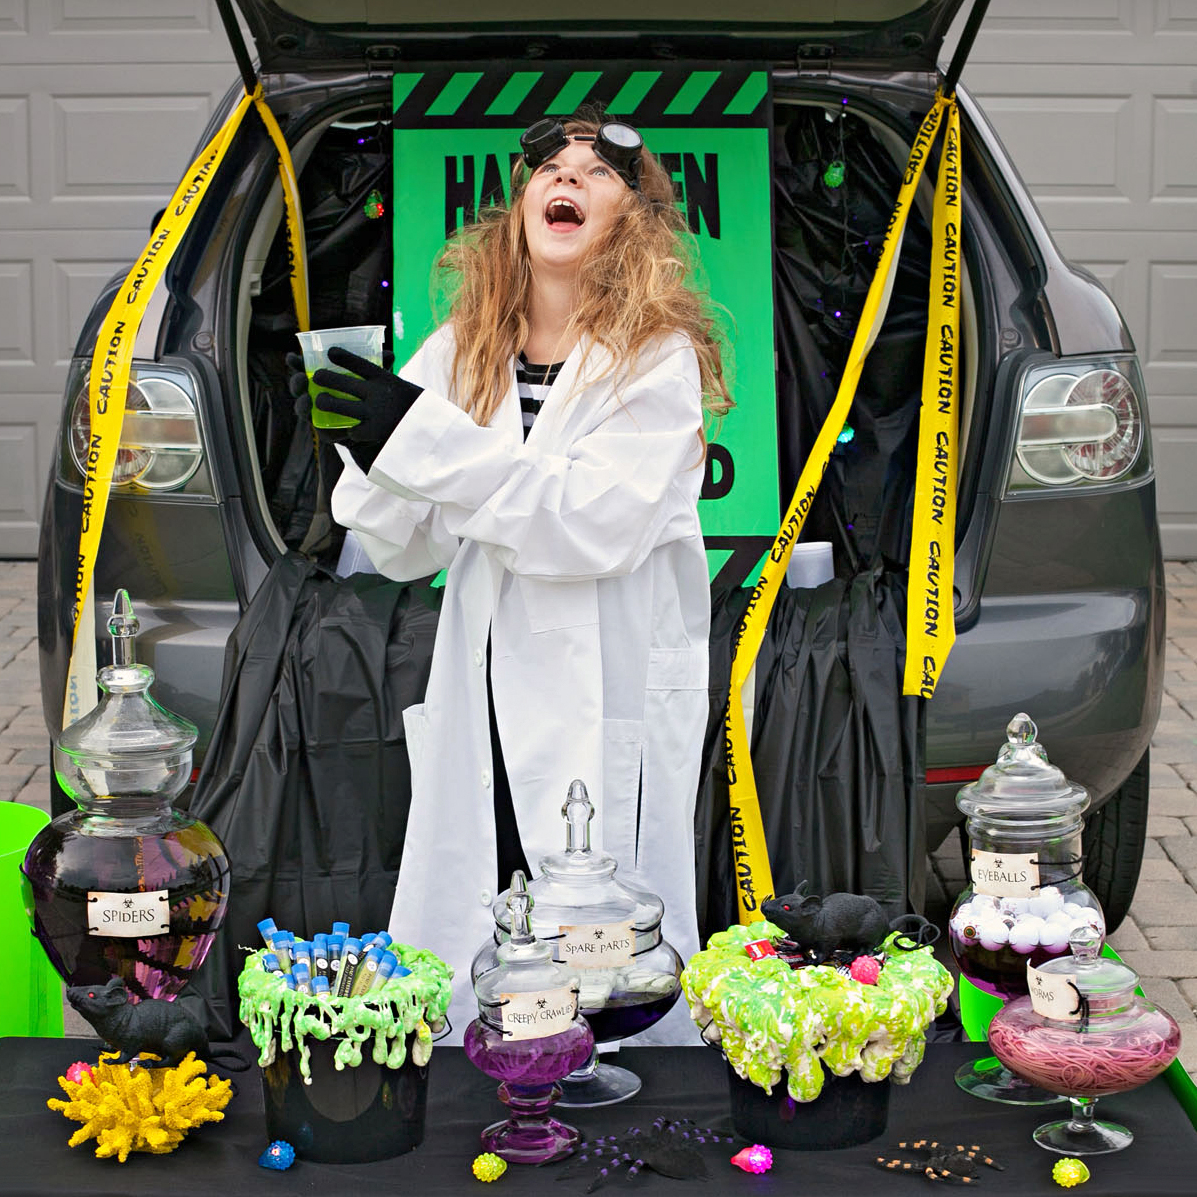 apothecary-themed trunk-or-treat